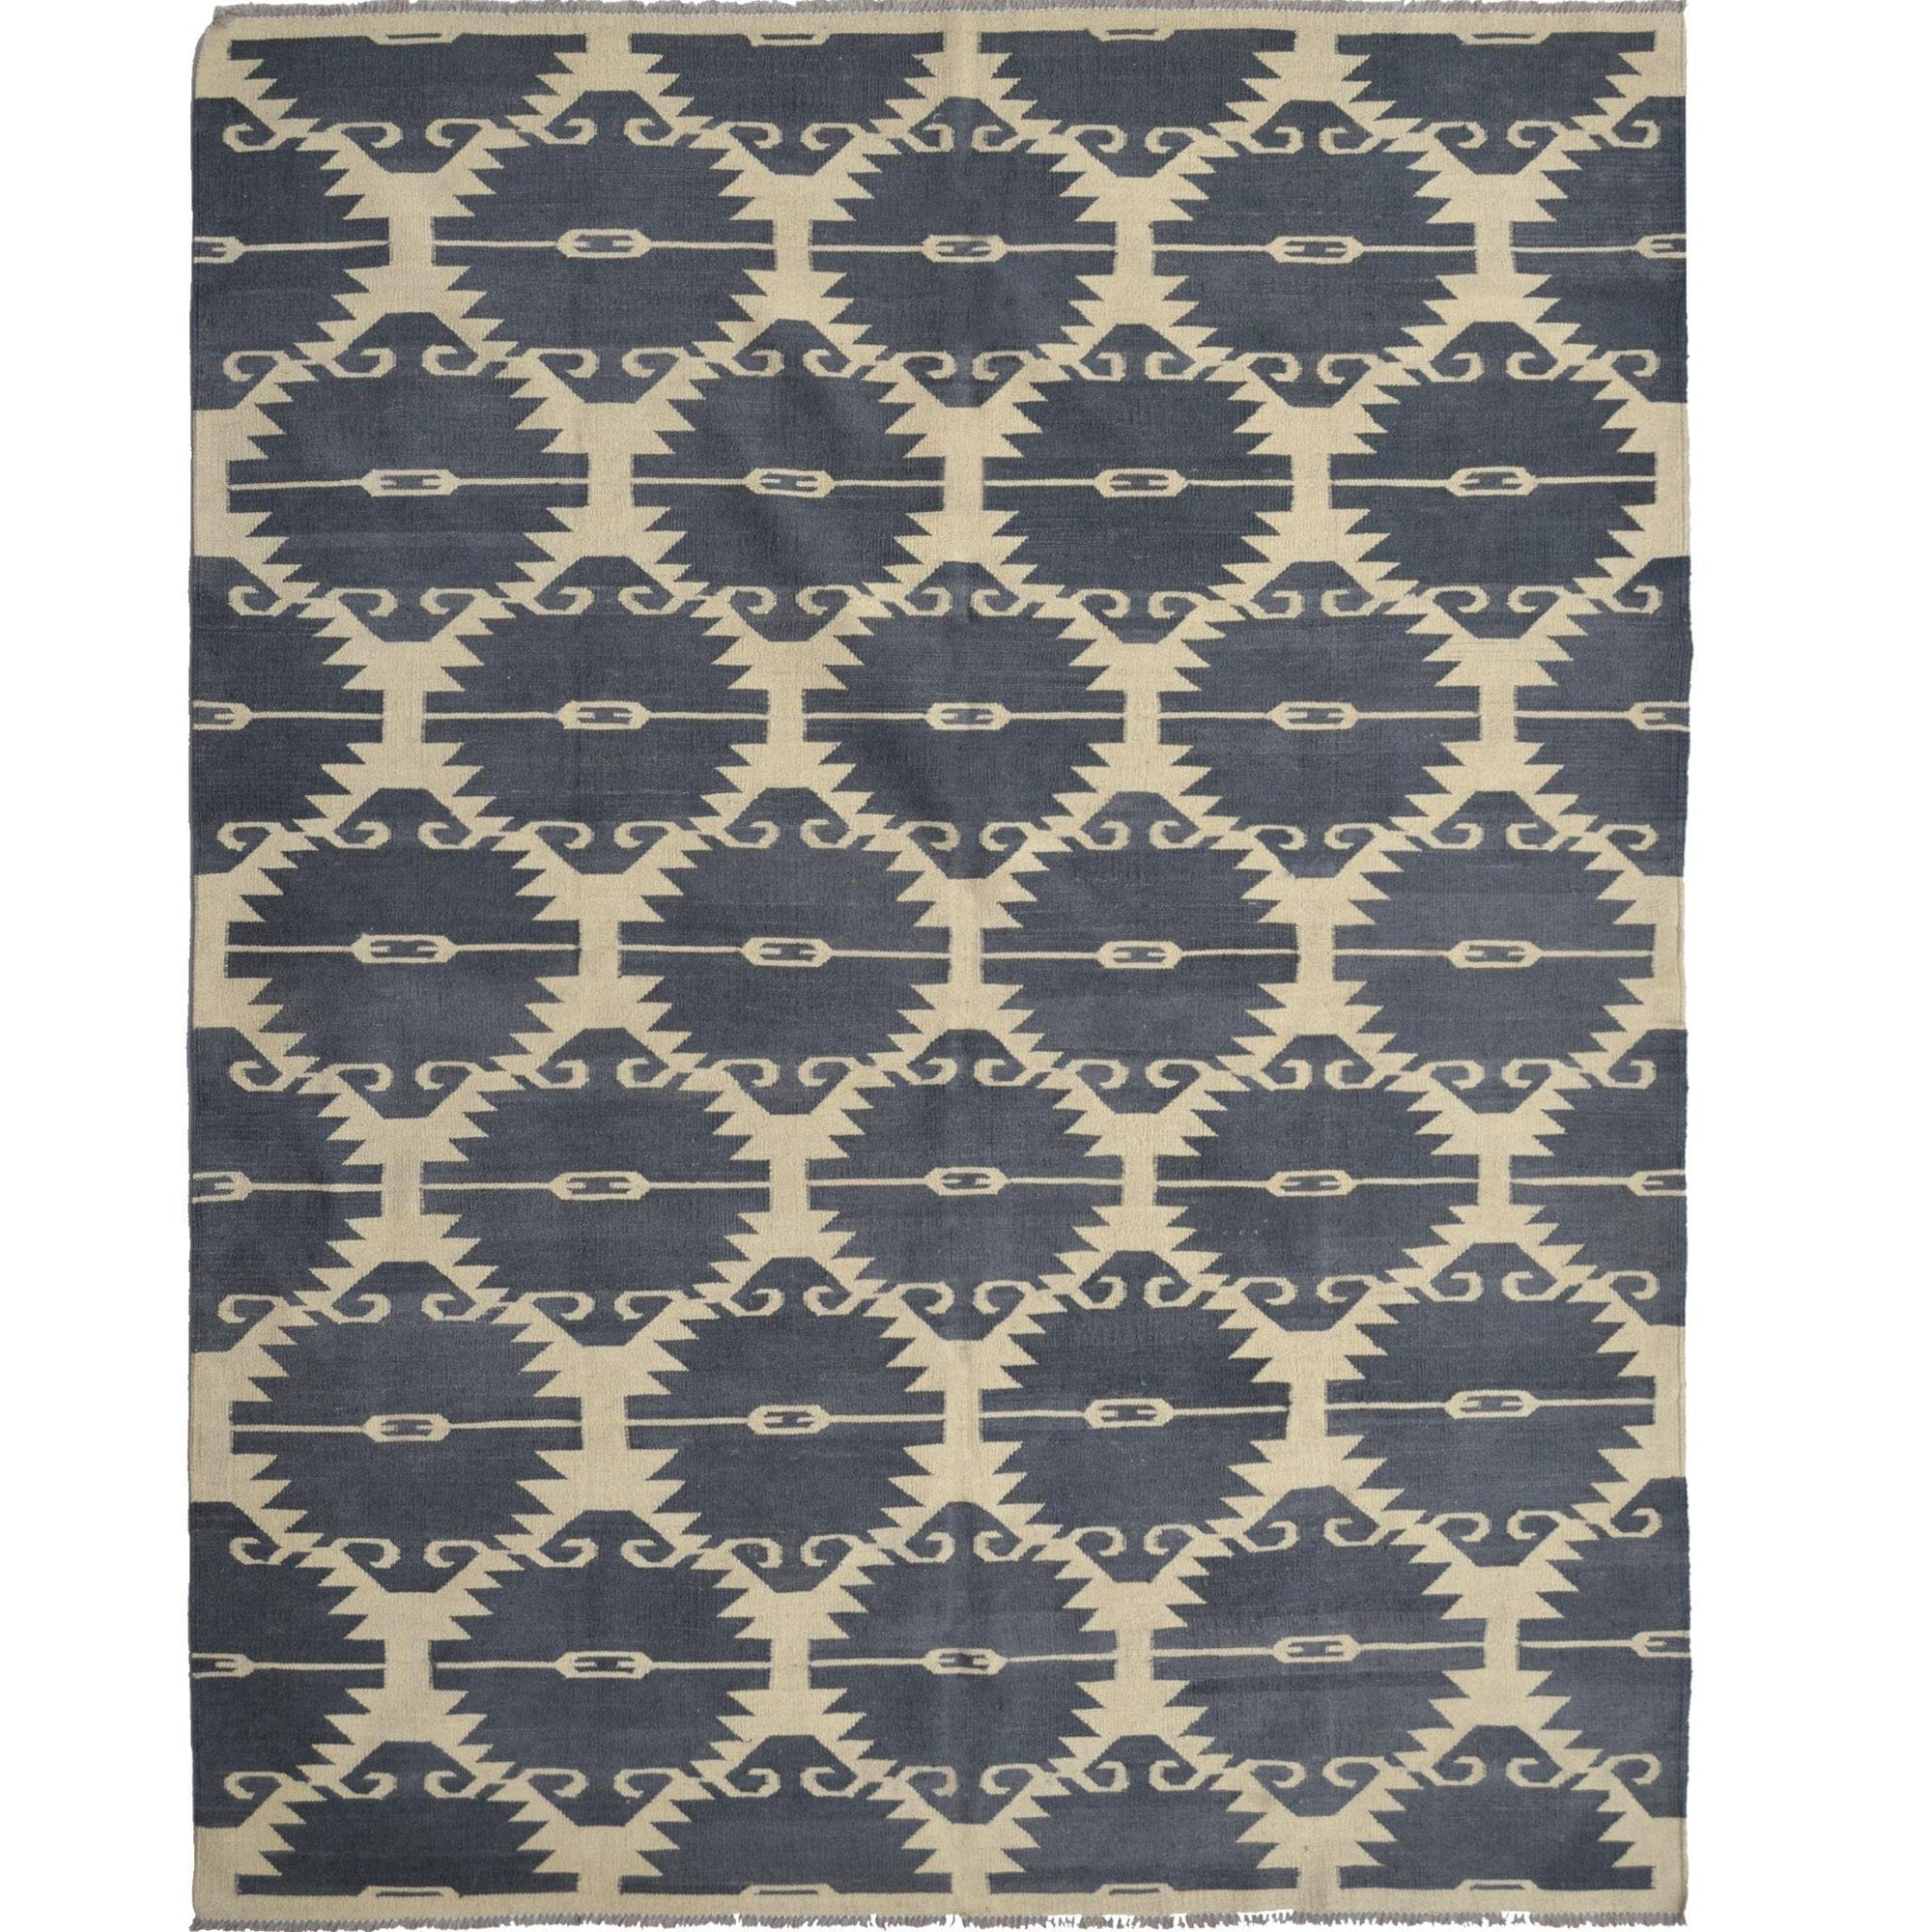 Modern Hand-woven 100% Wool Chobi Kilim Rug 192cm x 248cm Persian-Rug | House-of-Haghi | NewMarket | Auckland | NZ | Handmade Persian Rugs | Hand Knotted Persian Rugs